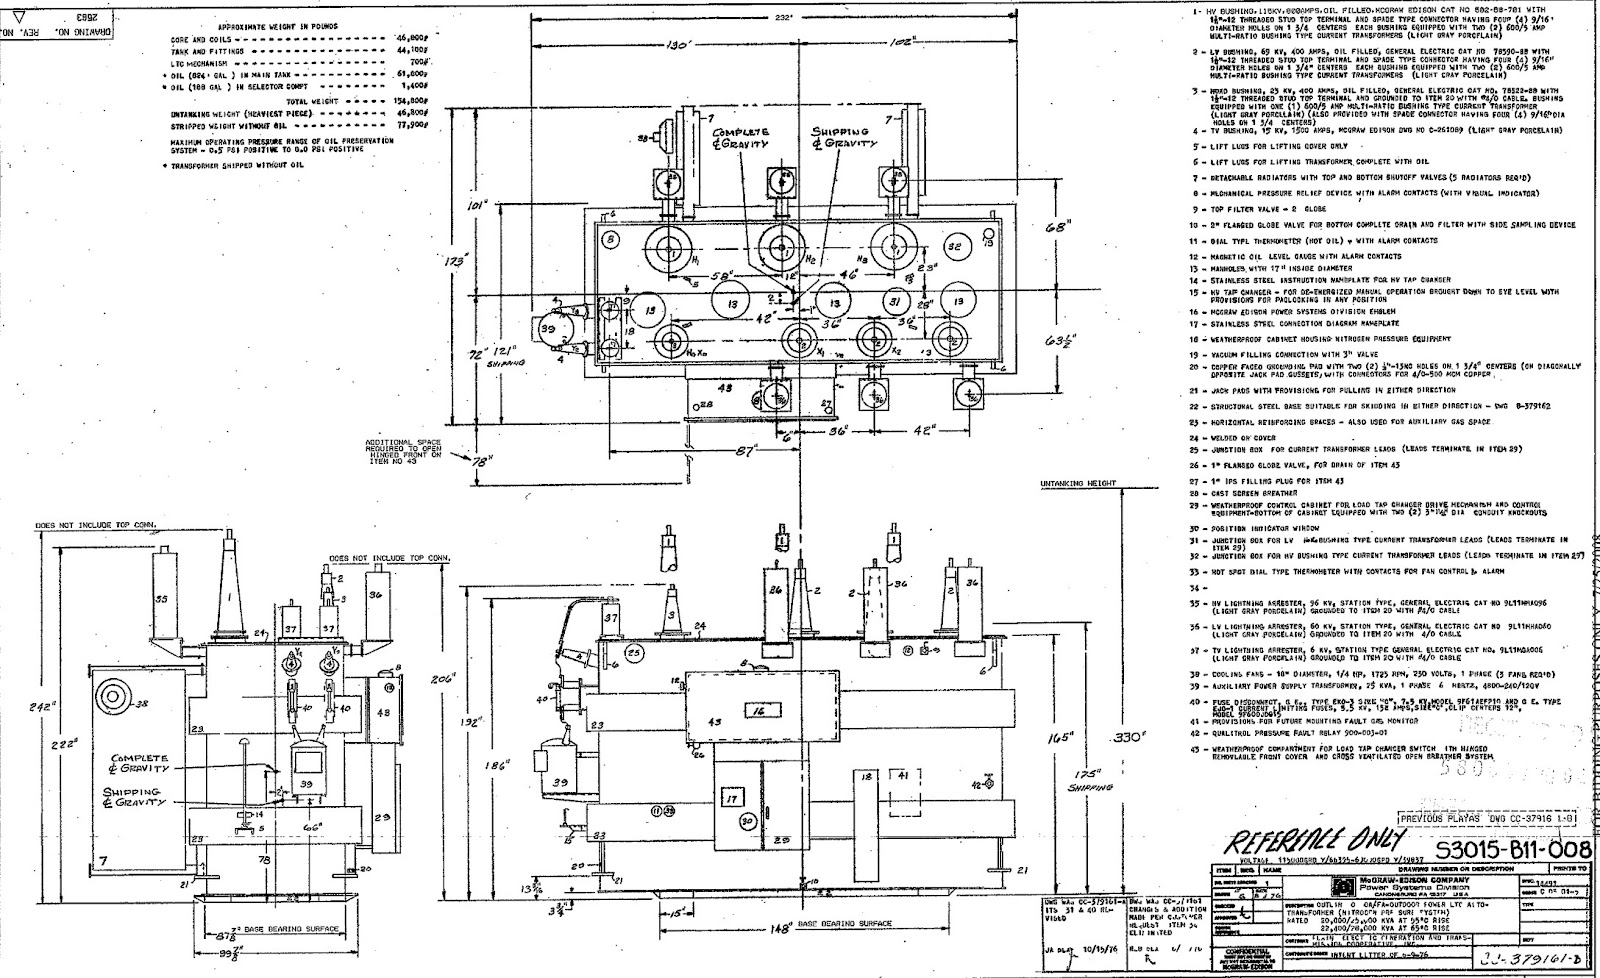 acme buck boost transformer wiring diagram gallery